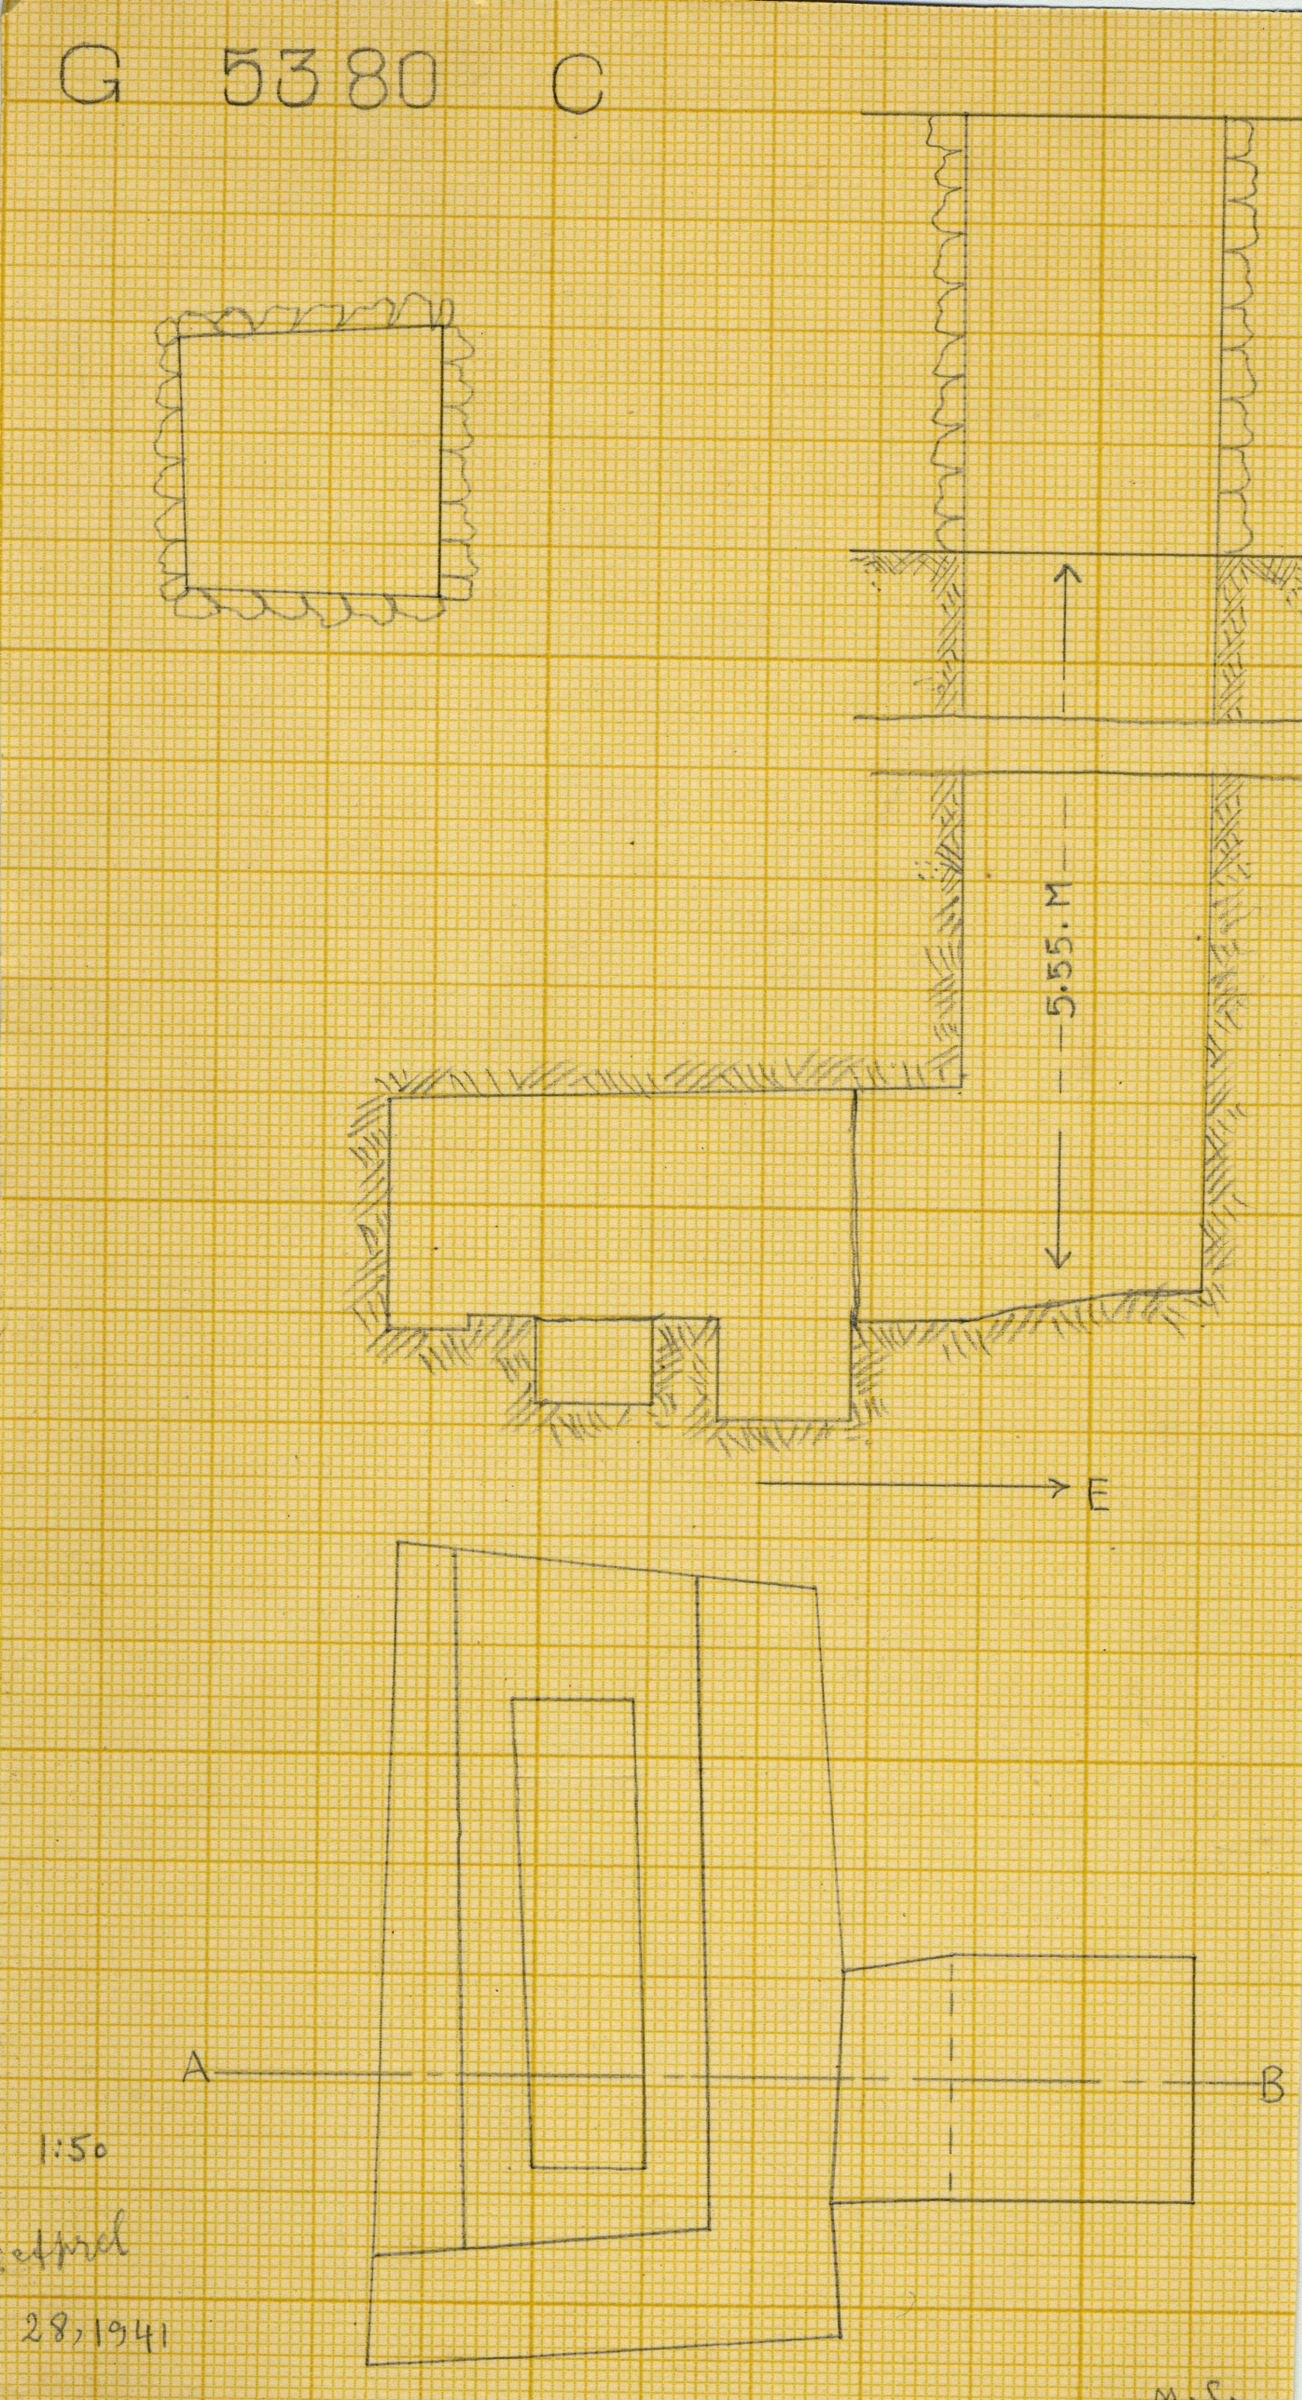 Maps and plans: G 2330 = G 5380, Shaft C